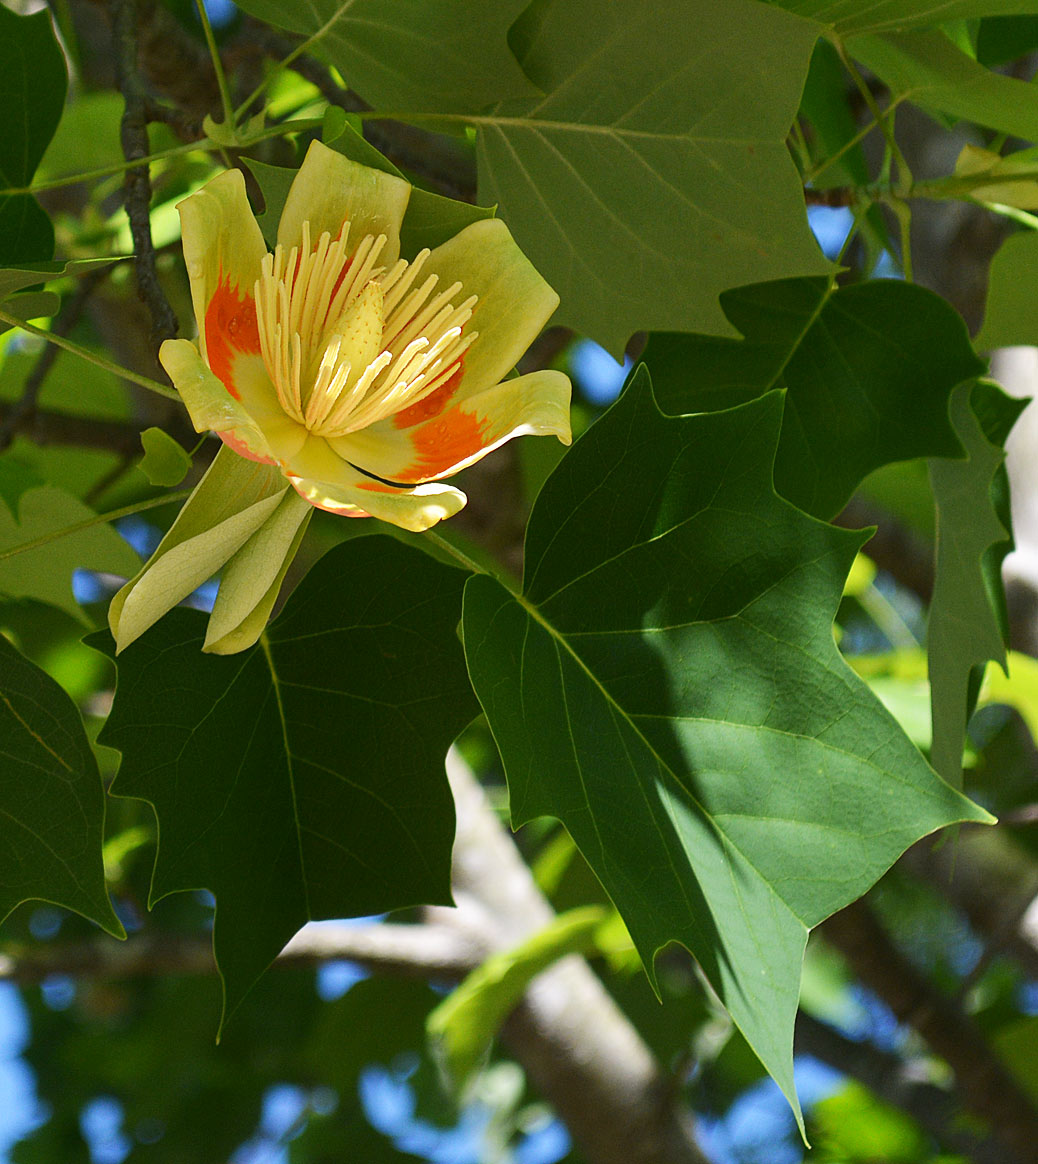 Liriodendron tulipifera - Tulip tree in flower.